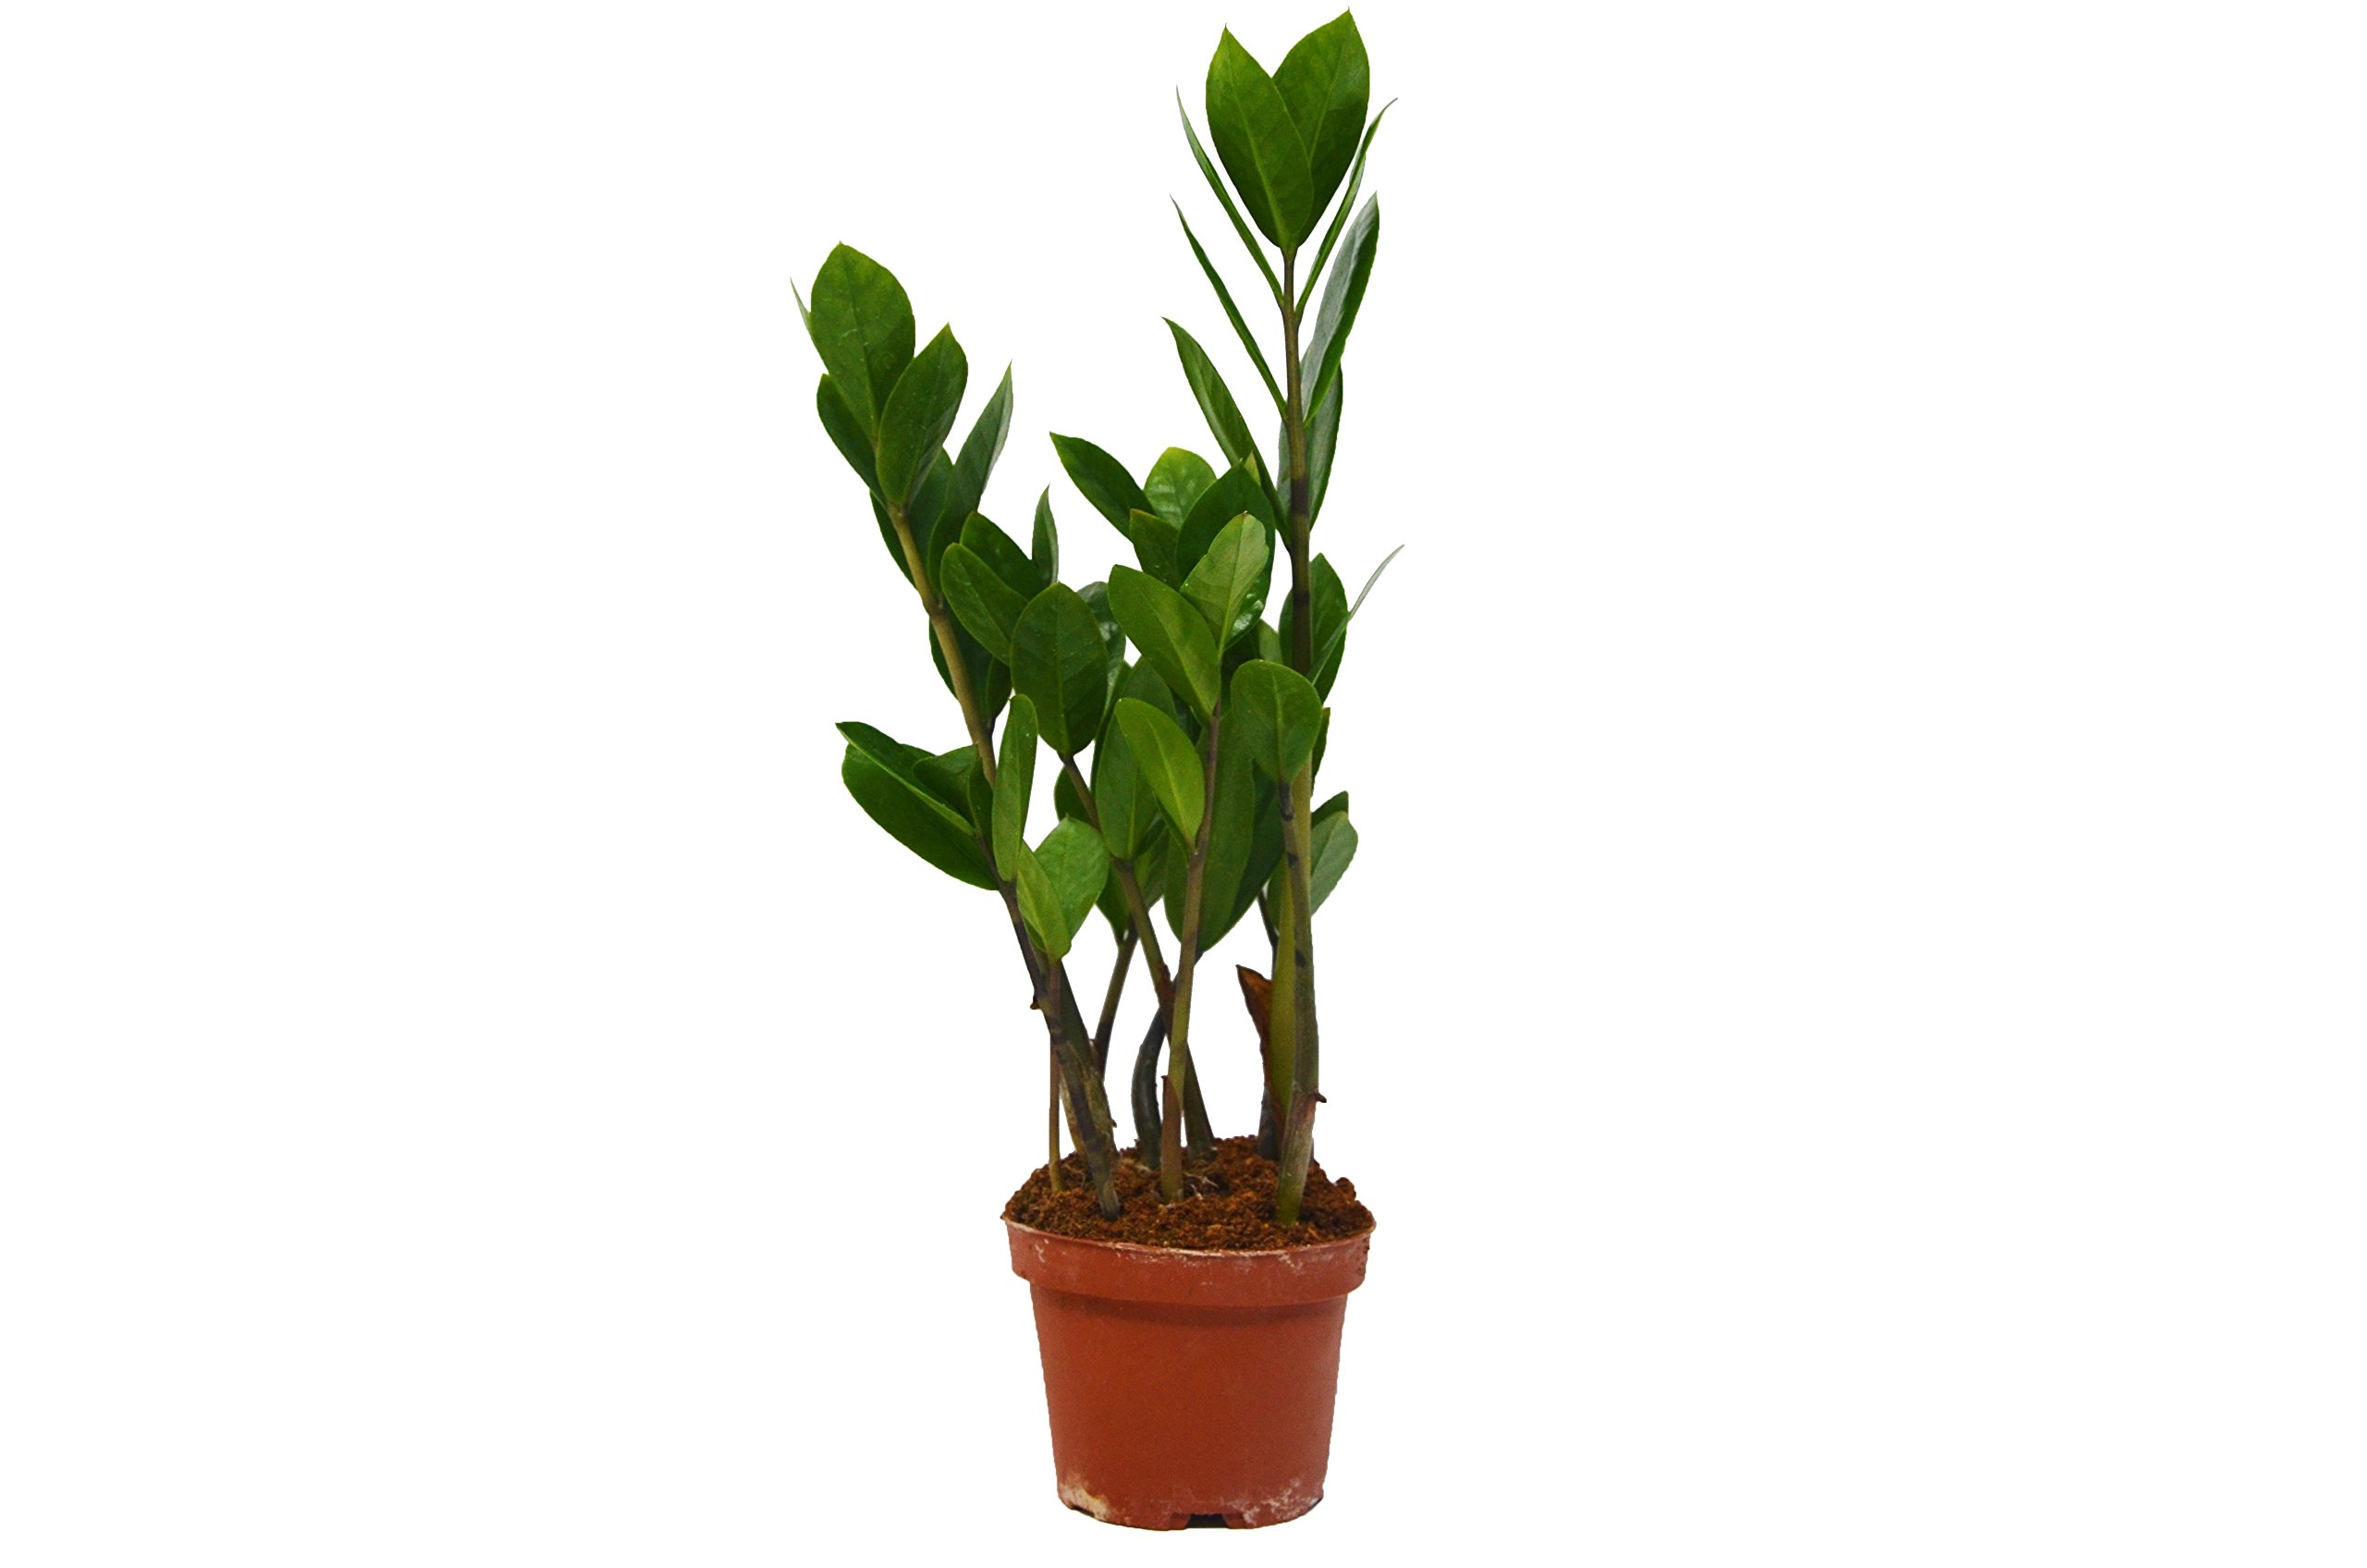 Zamioculcas Zamiifolia ZZ plant - In 4'' Pot - Live House Plant - FREE Care Guide - 16'' - 24'' Tall! by House Plant Shop